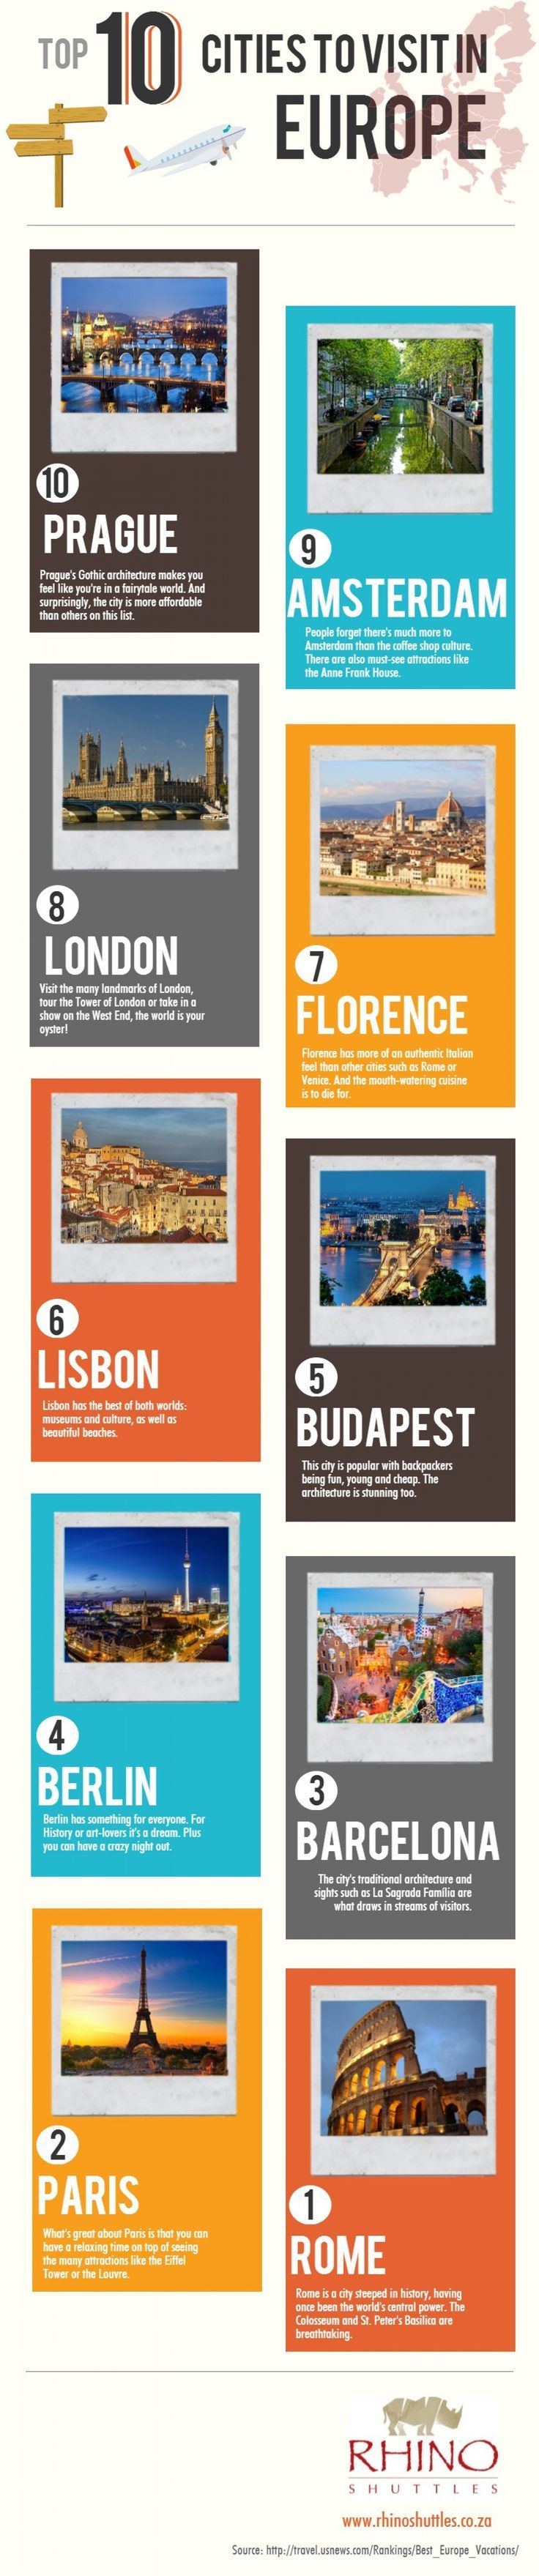 Best Europe For Kids Images On Pinterest School Charlotte - Top 10 cities in europe to travel with kids